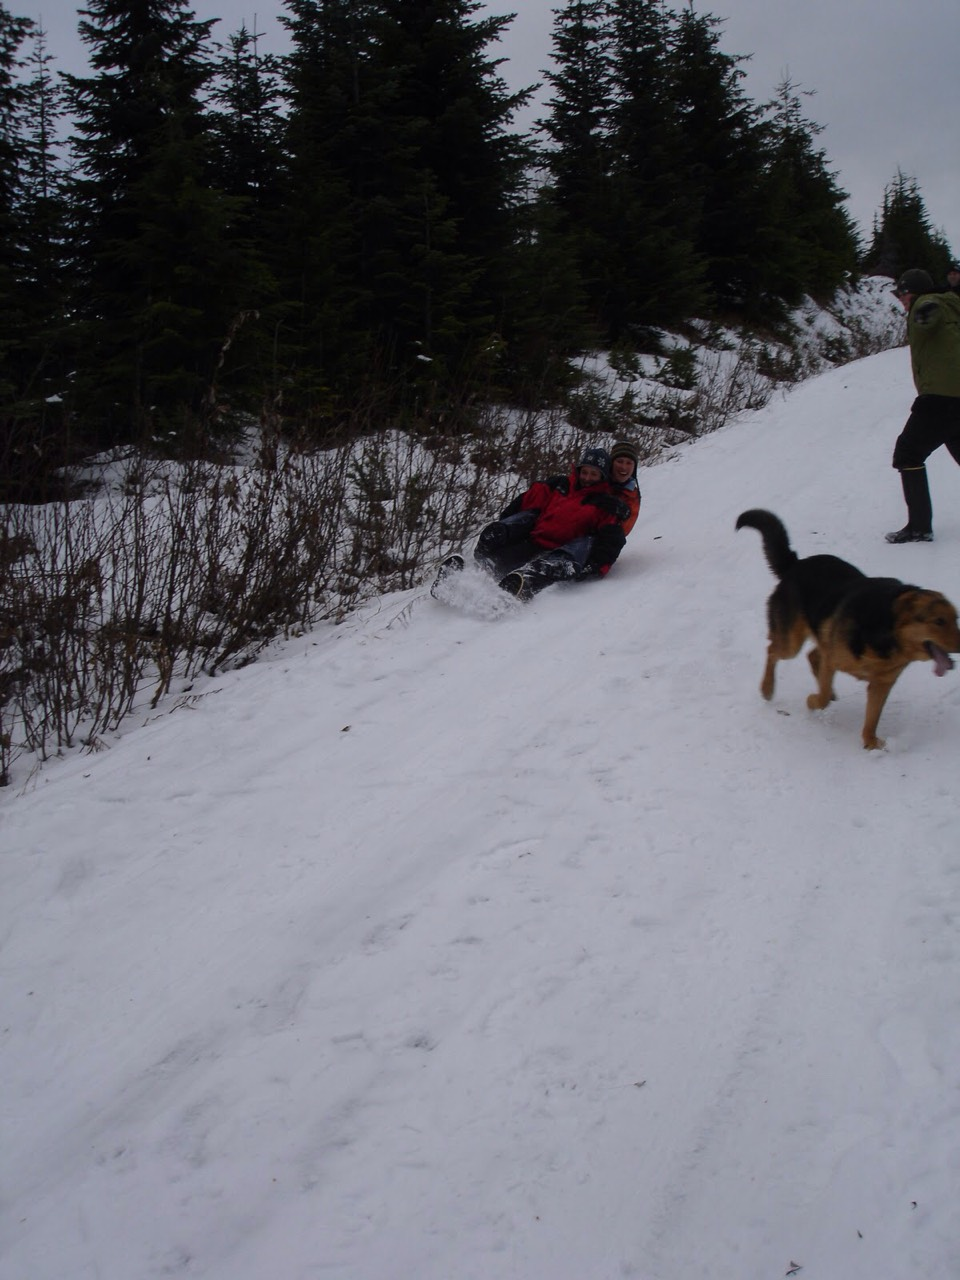 6.) chase your dog! Play with him/her in the snow!